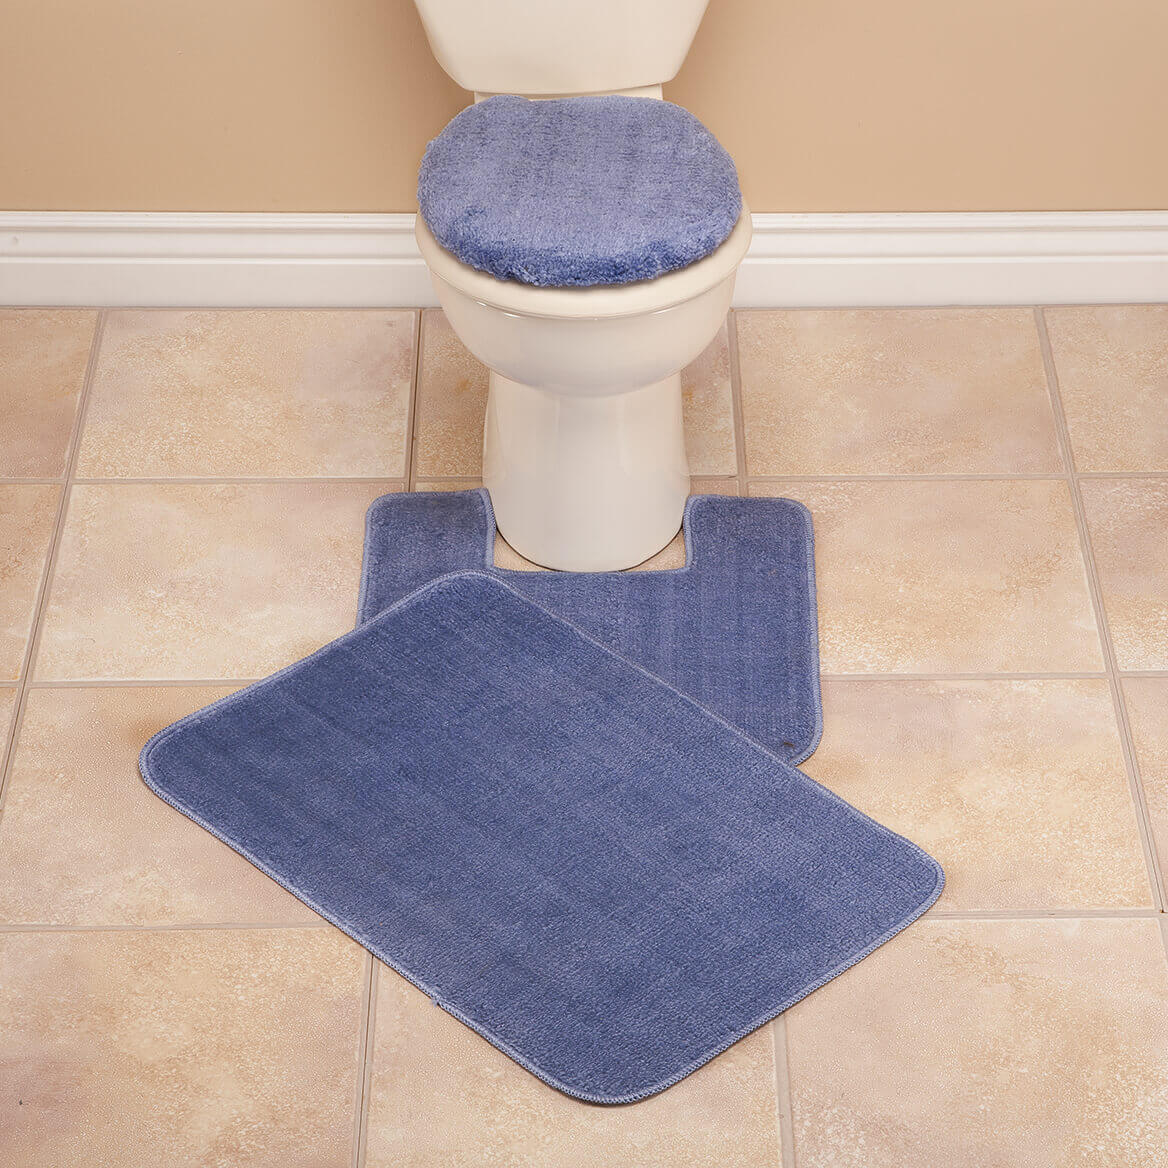 Sala Set Cover Where To Buy Plush Bath Rug Set Toilet Seat Cover And Rug Set Miles